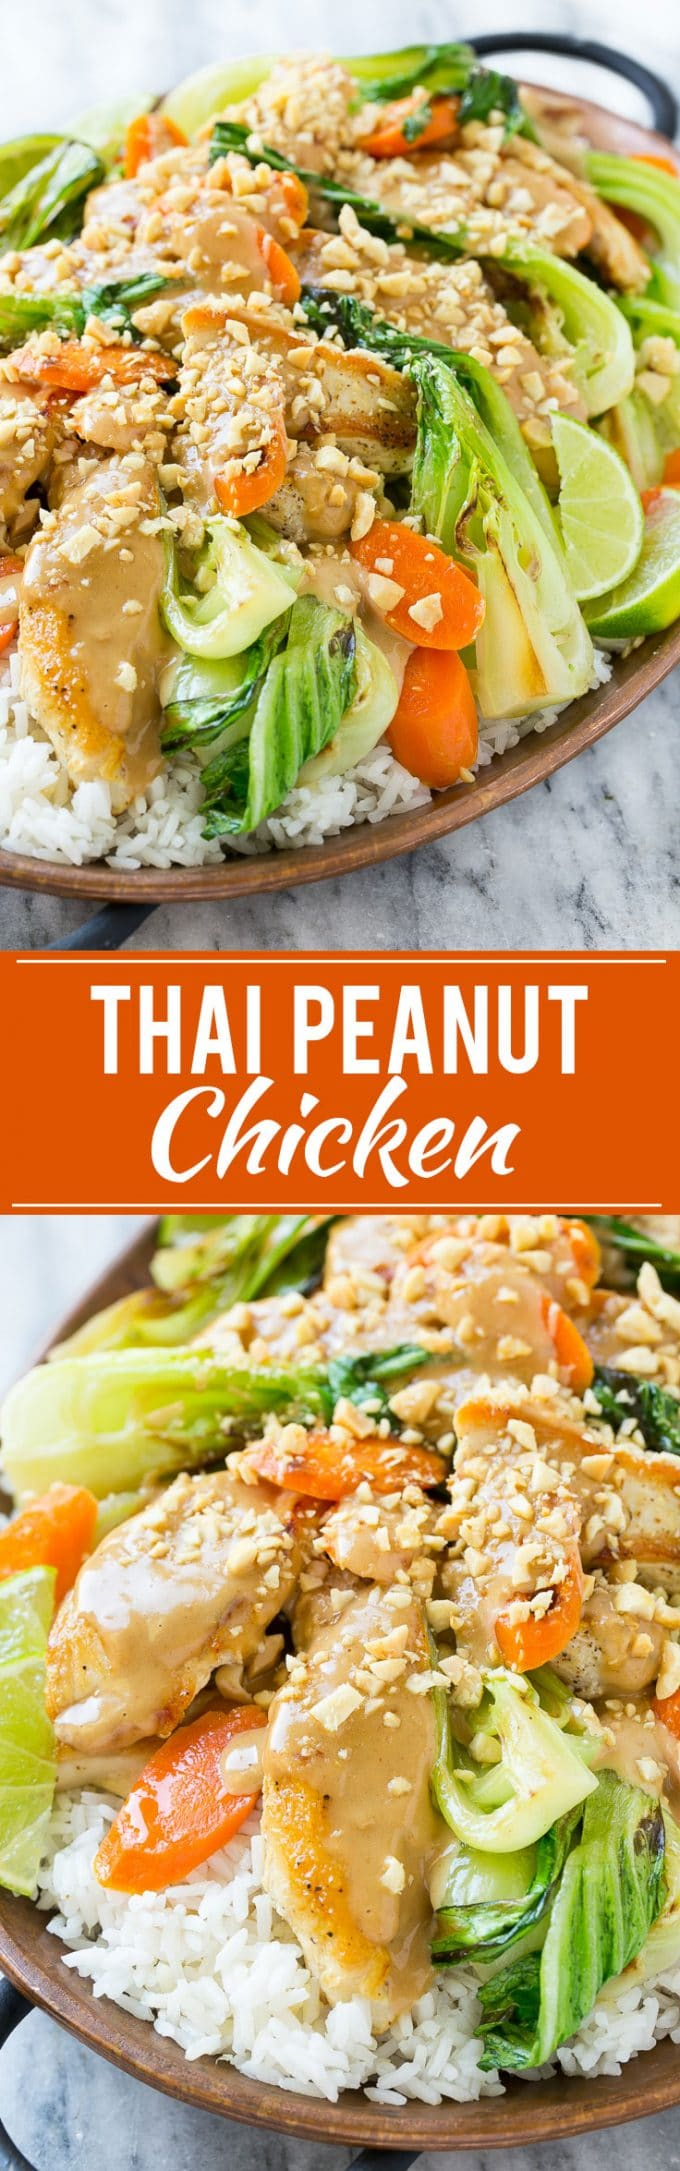 Thai Peanut Chicken | Thai Chicken Recipe | Peanut Sauce Recipe #thaifood #chicken #peanuts #dinner #dinneratthezoo